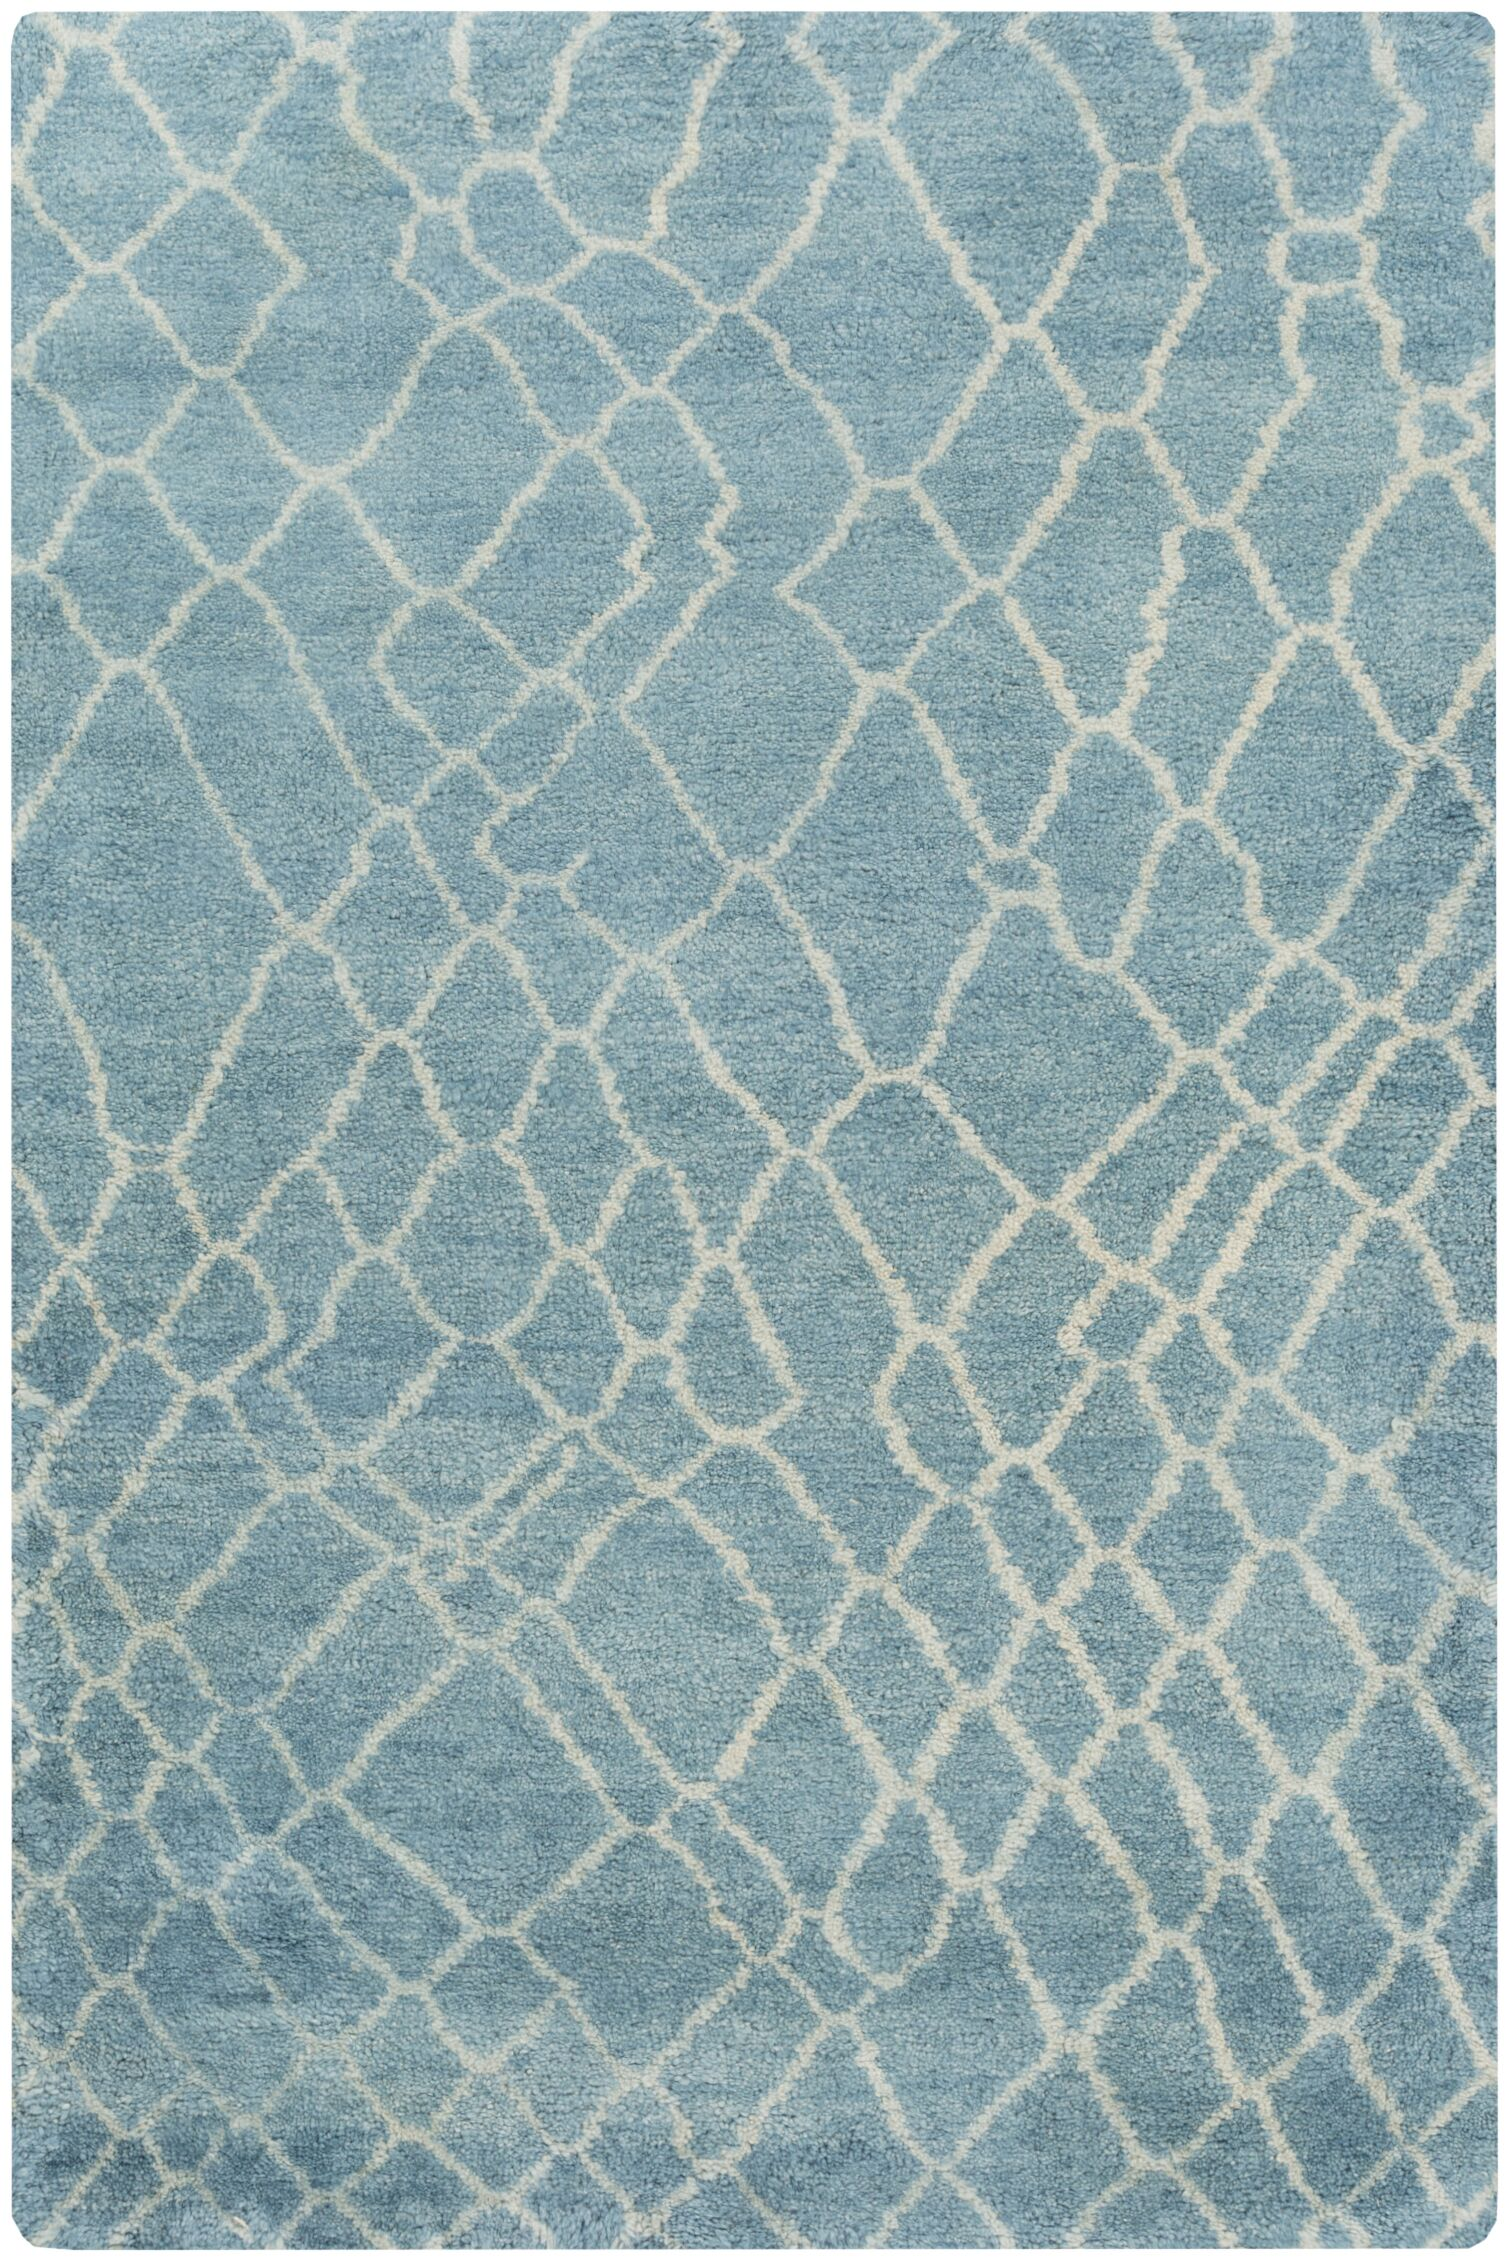 Somers Teal Area Rug Rug Size: Rectangle 2' x 3'